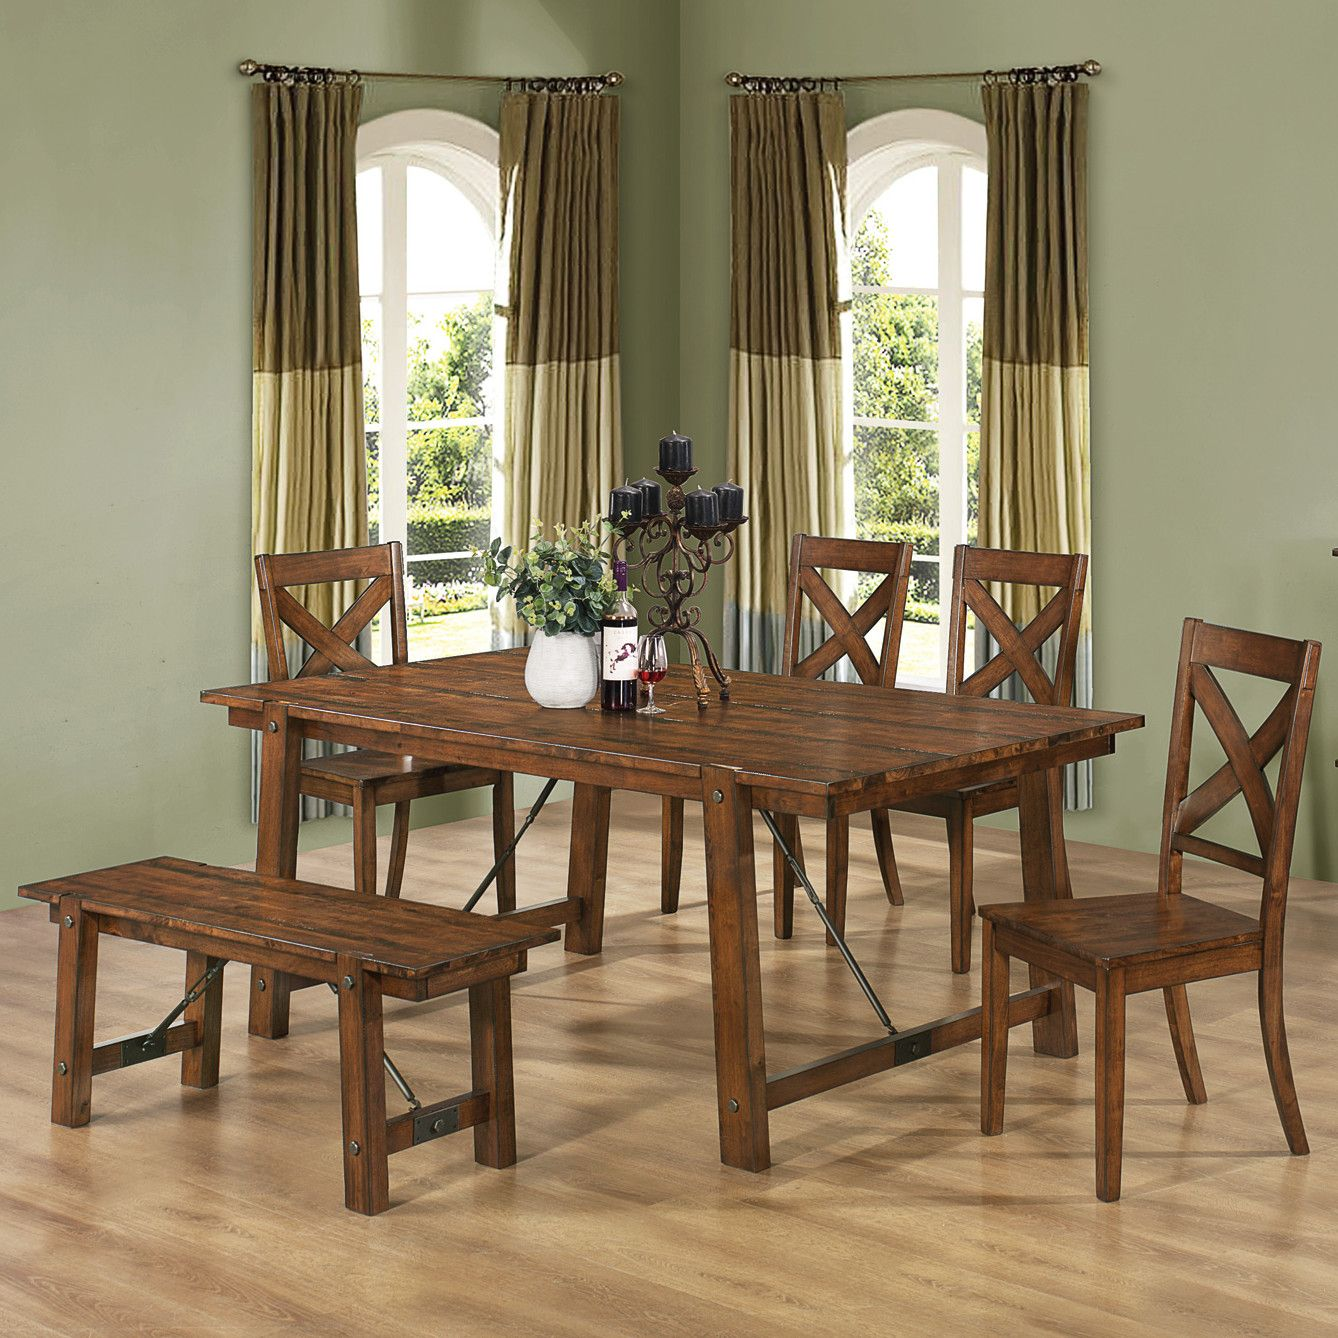 Wildon home tyler dining table reviews wayfair dining room room dzzzfo